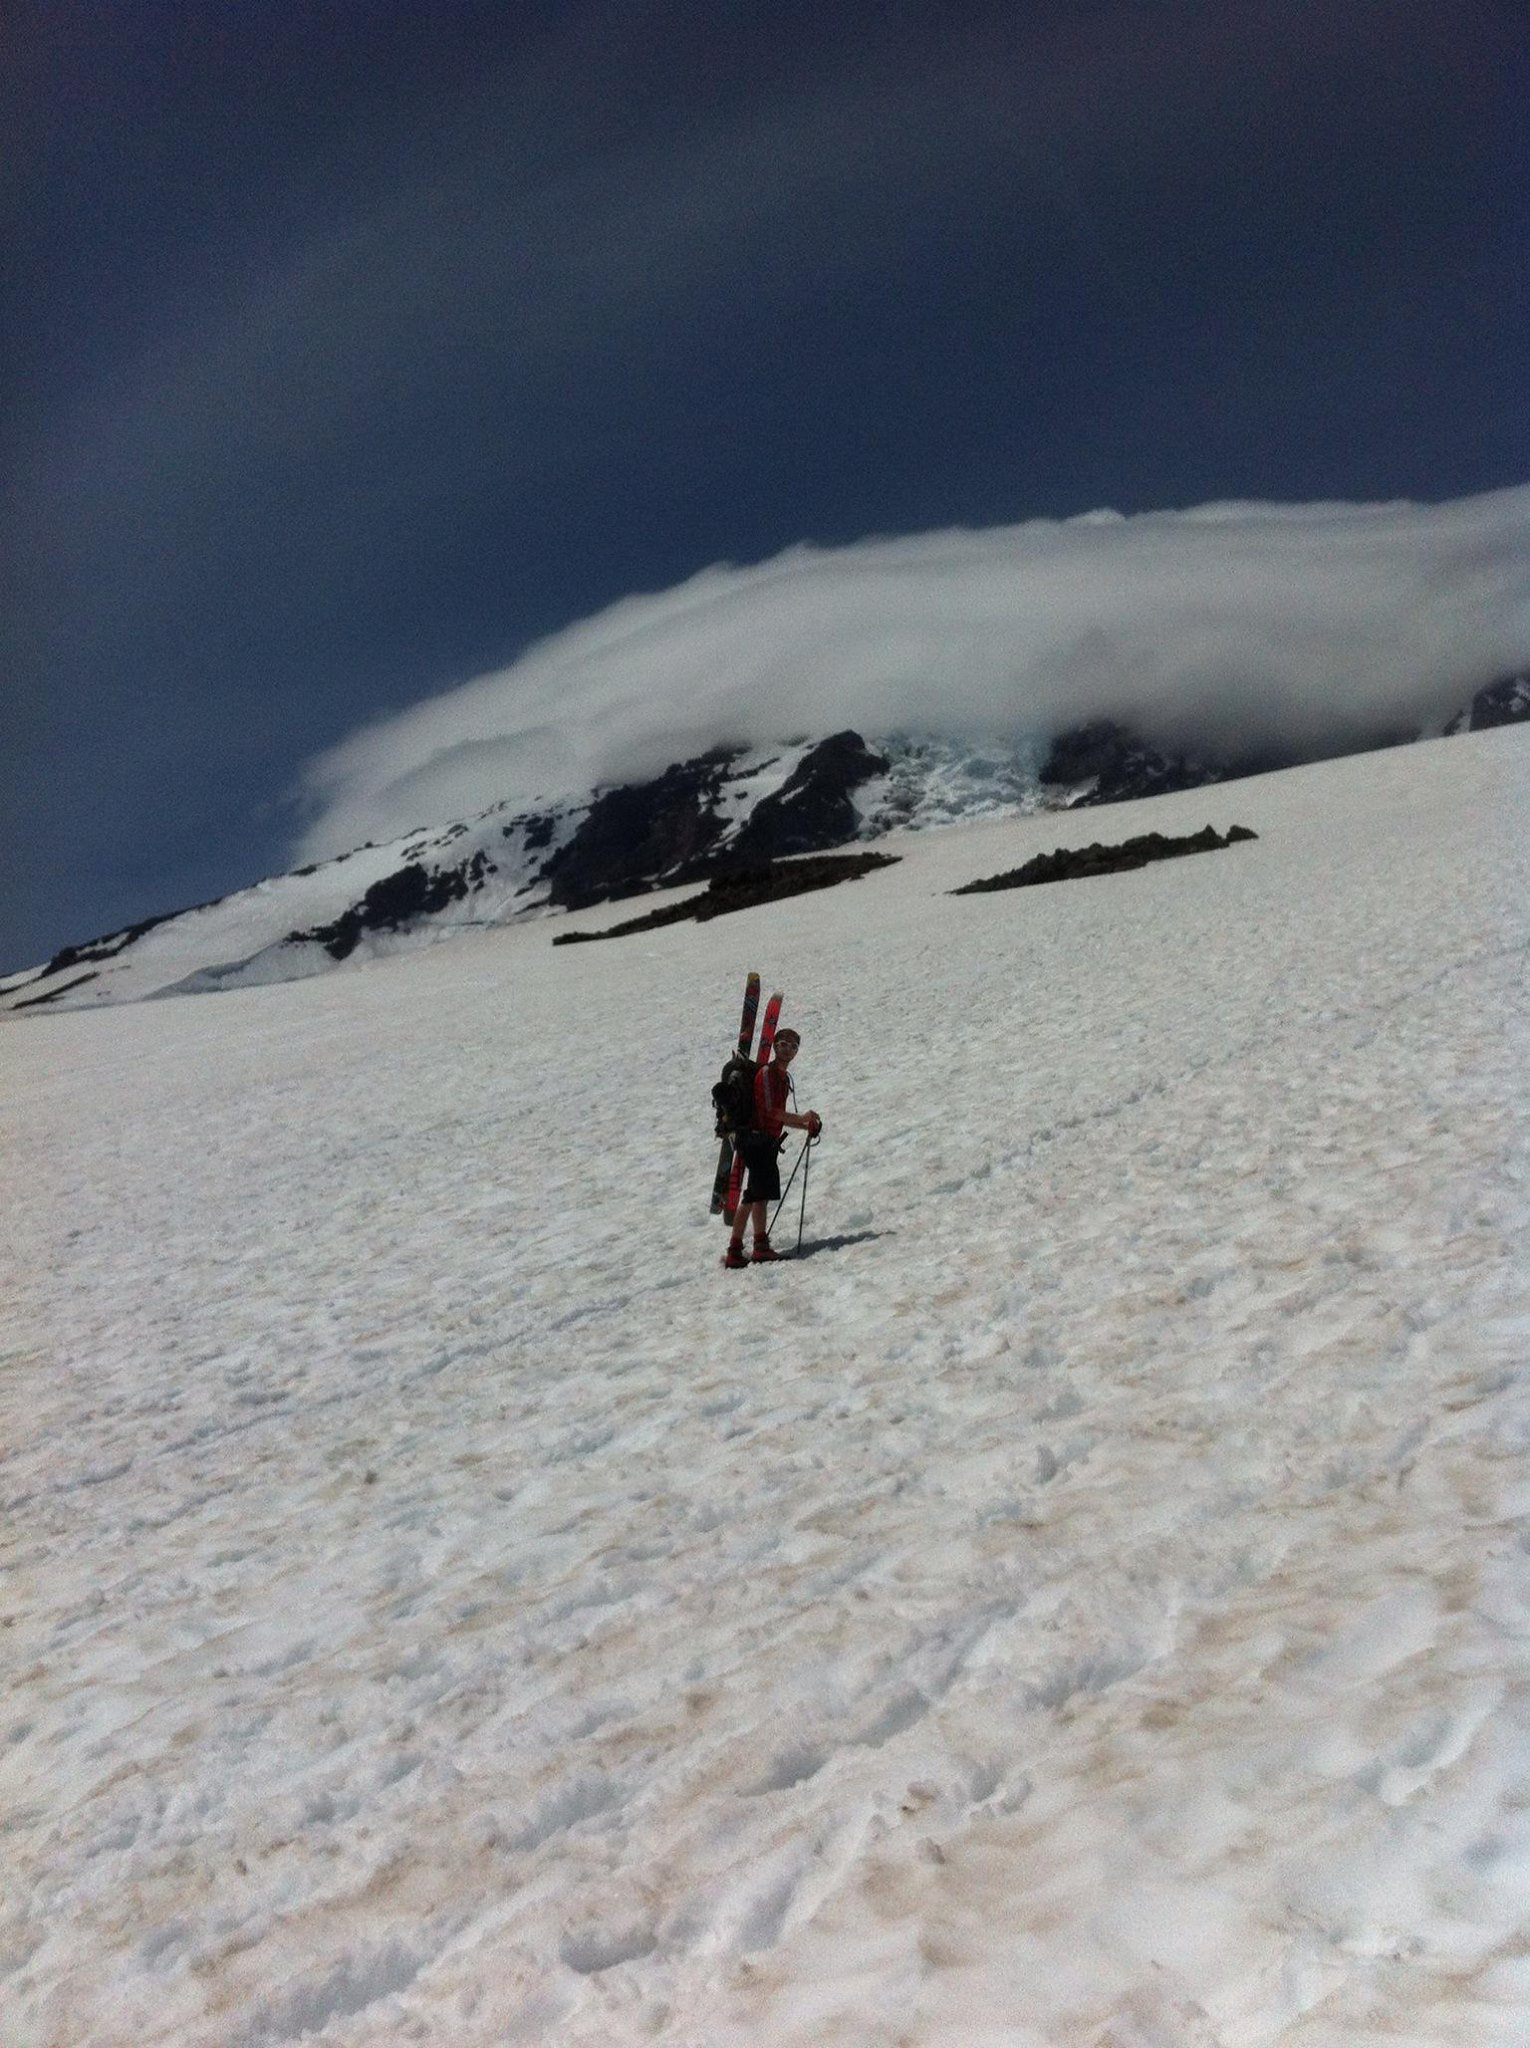 Bootpacking up Mt. Rainier